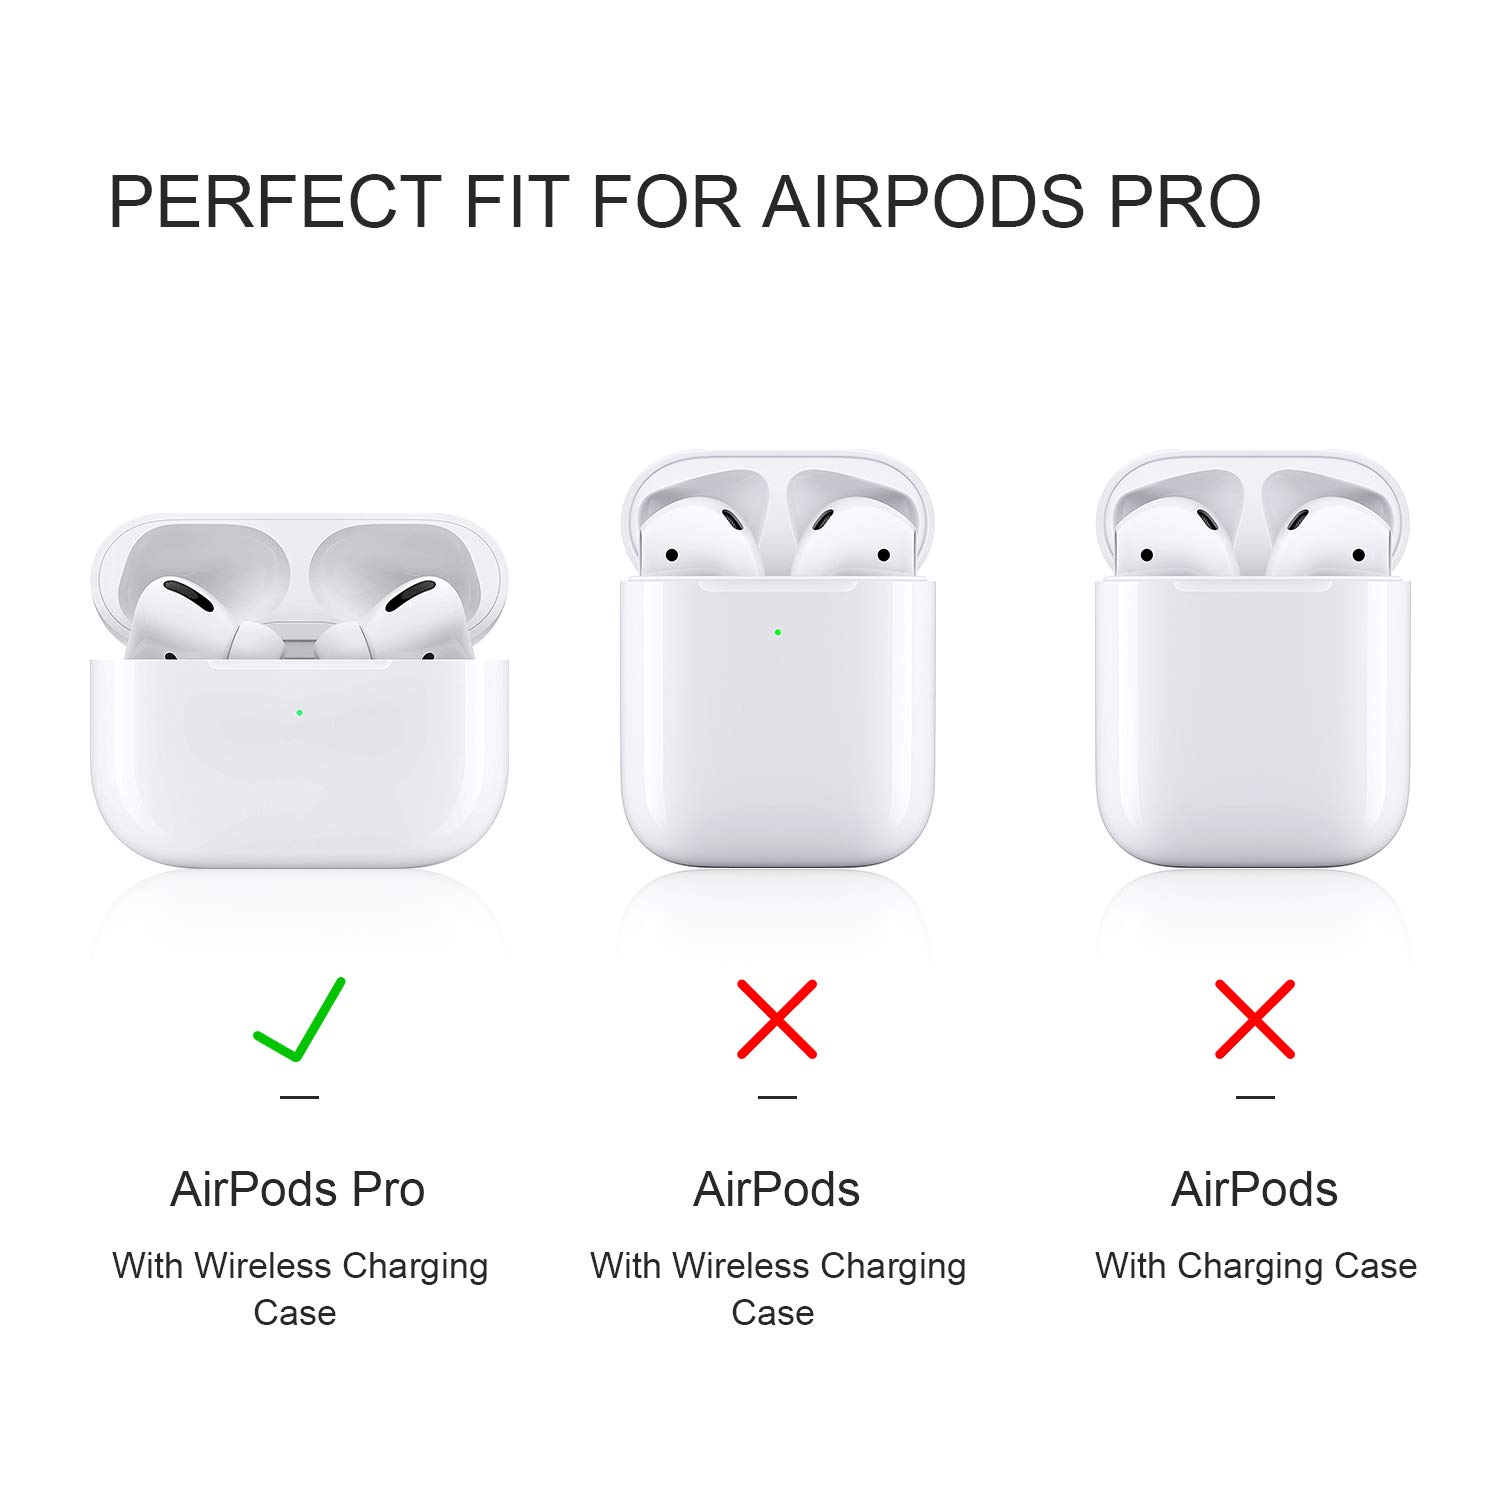 AirPods Pro Case Cover, 2.5MM Thick Silicone Shockproof Protective Cover with Visible Front LED Compatible with Wireless Charging AirPods Pro, Midnight Blue